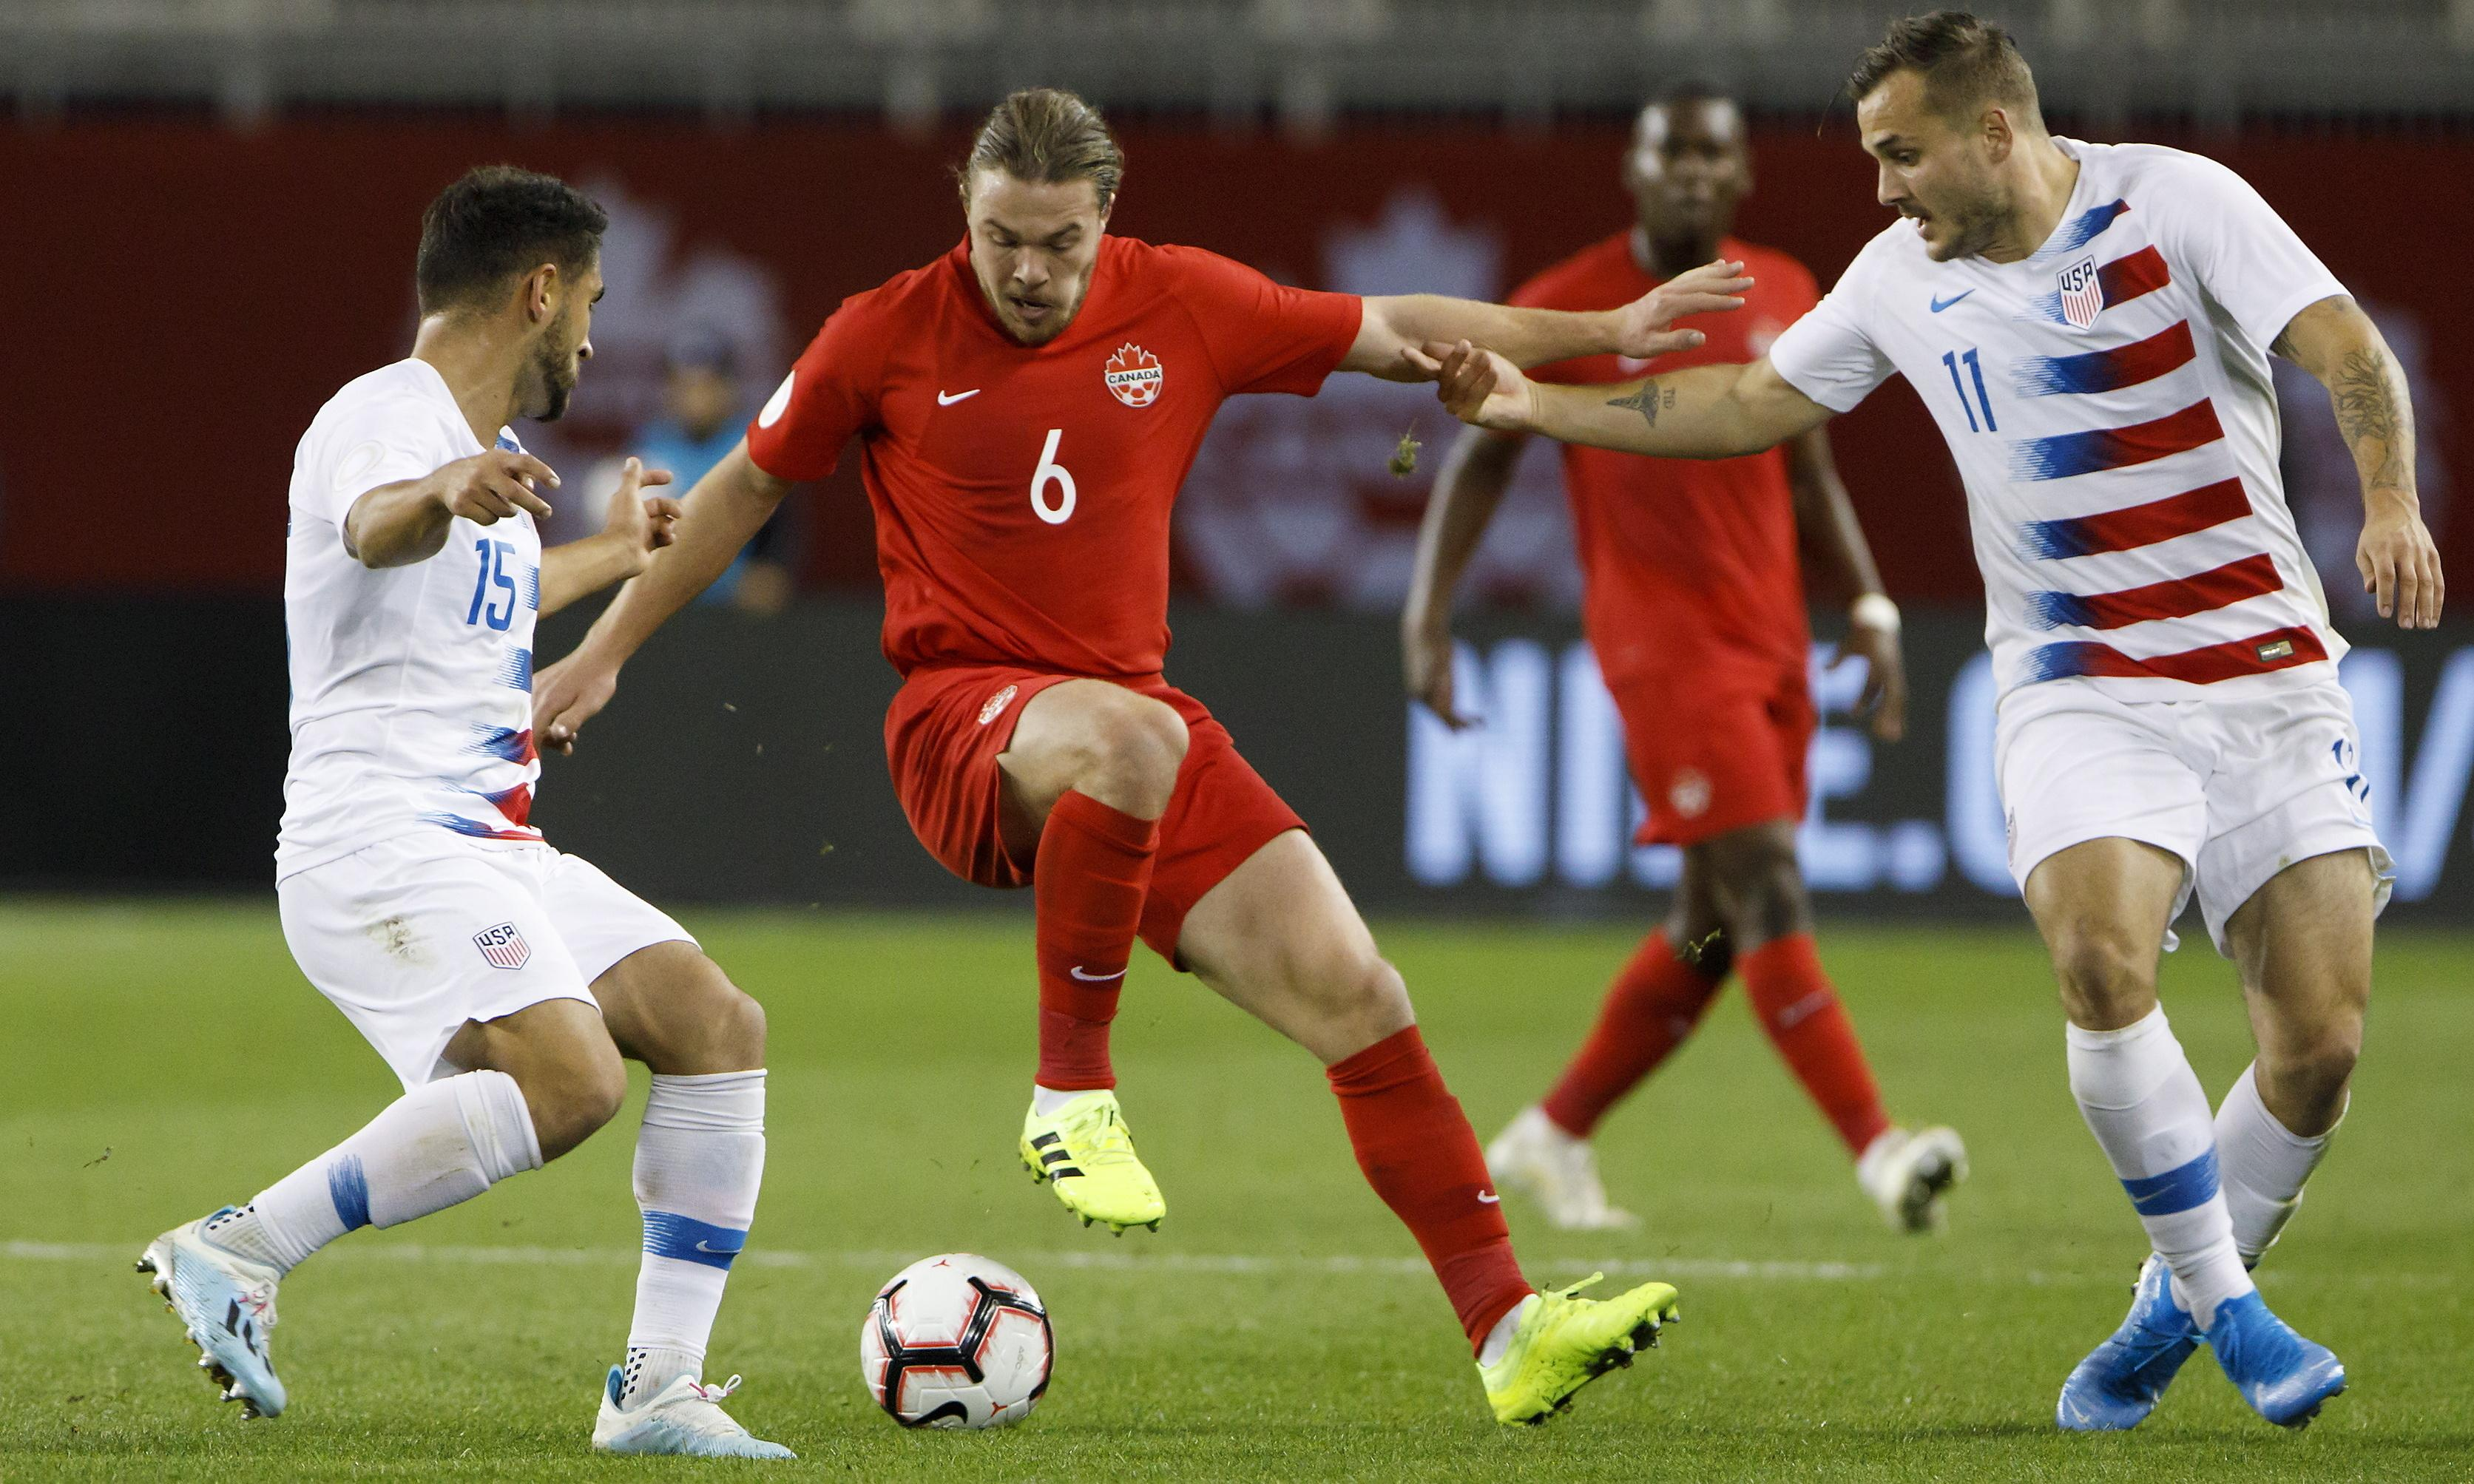 Trouble for Berhalter as USA lose to Canada for first time in 34 years